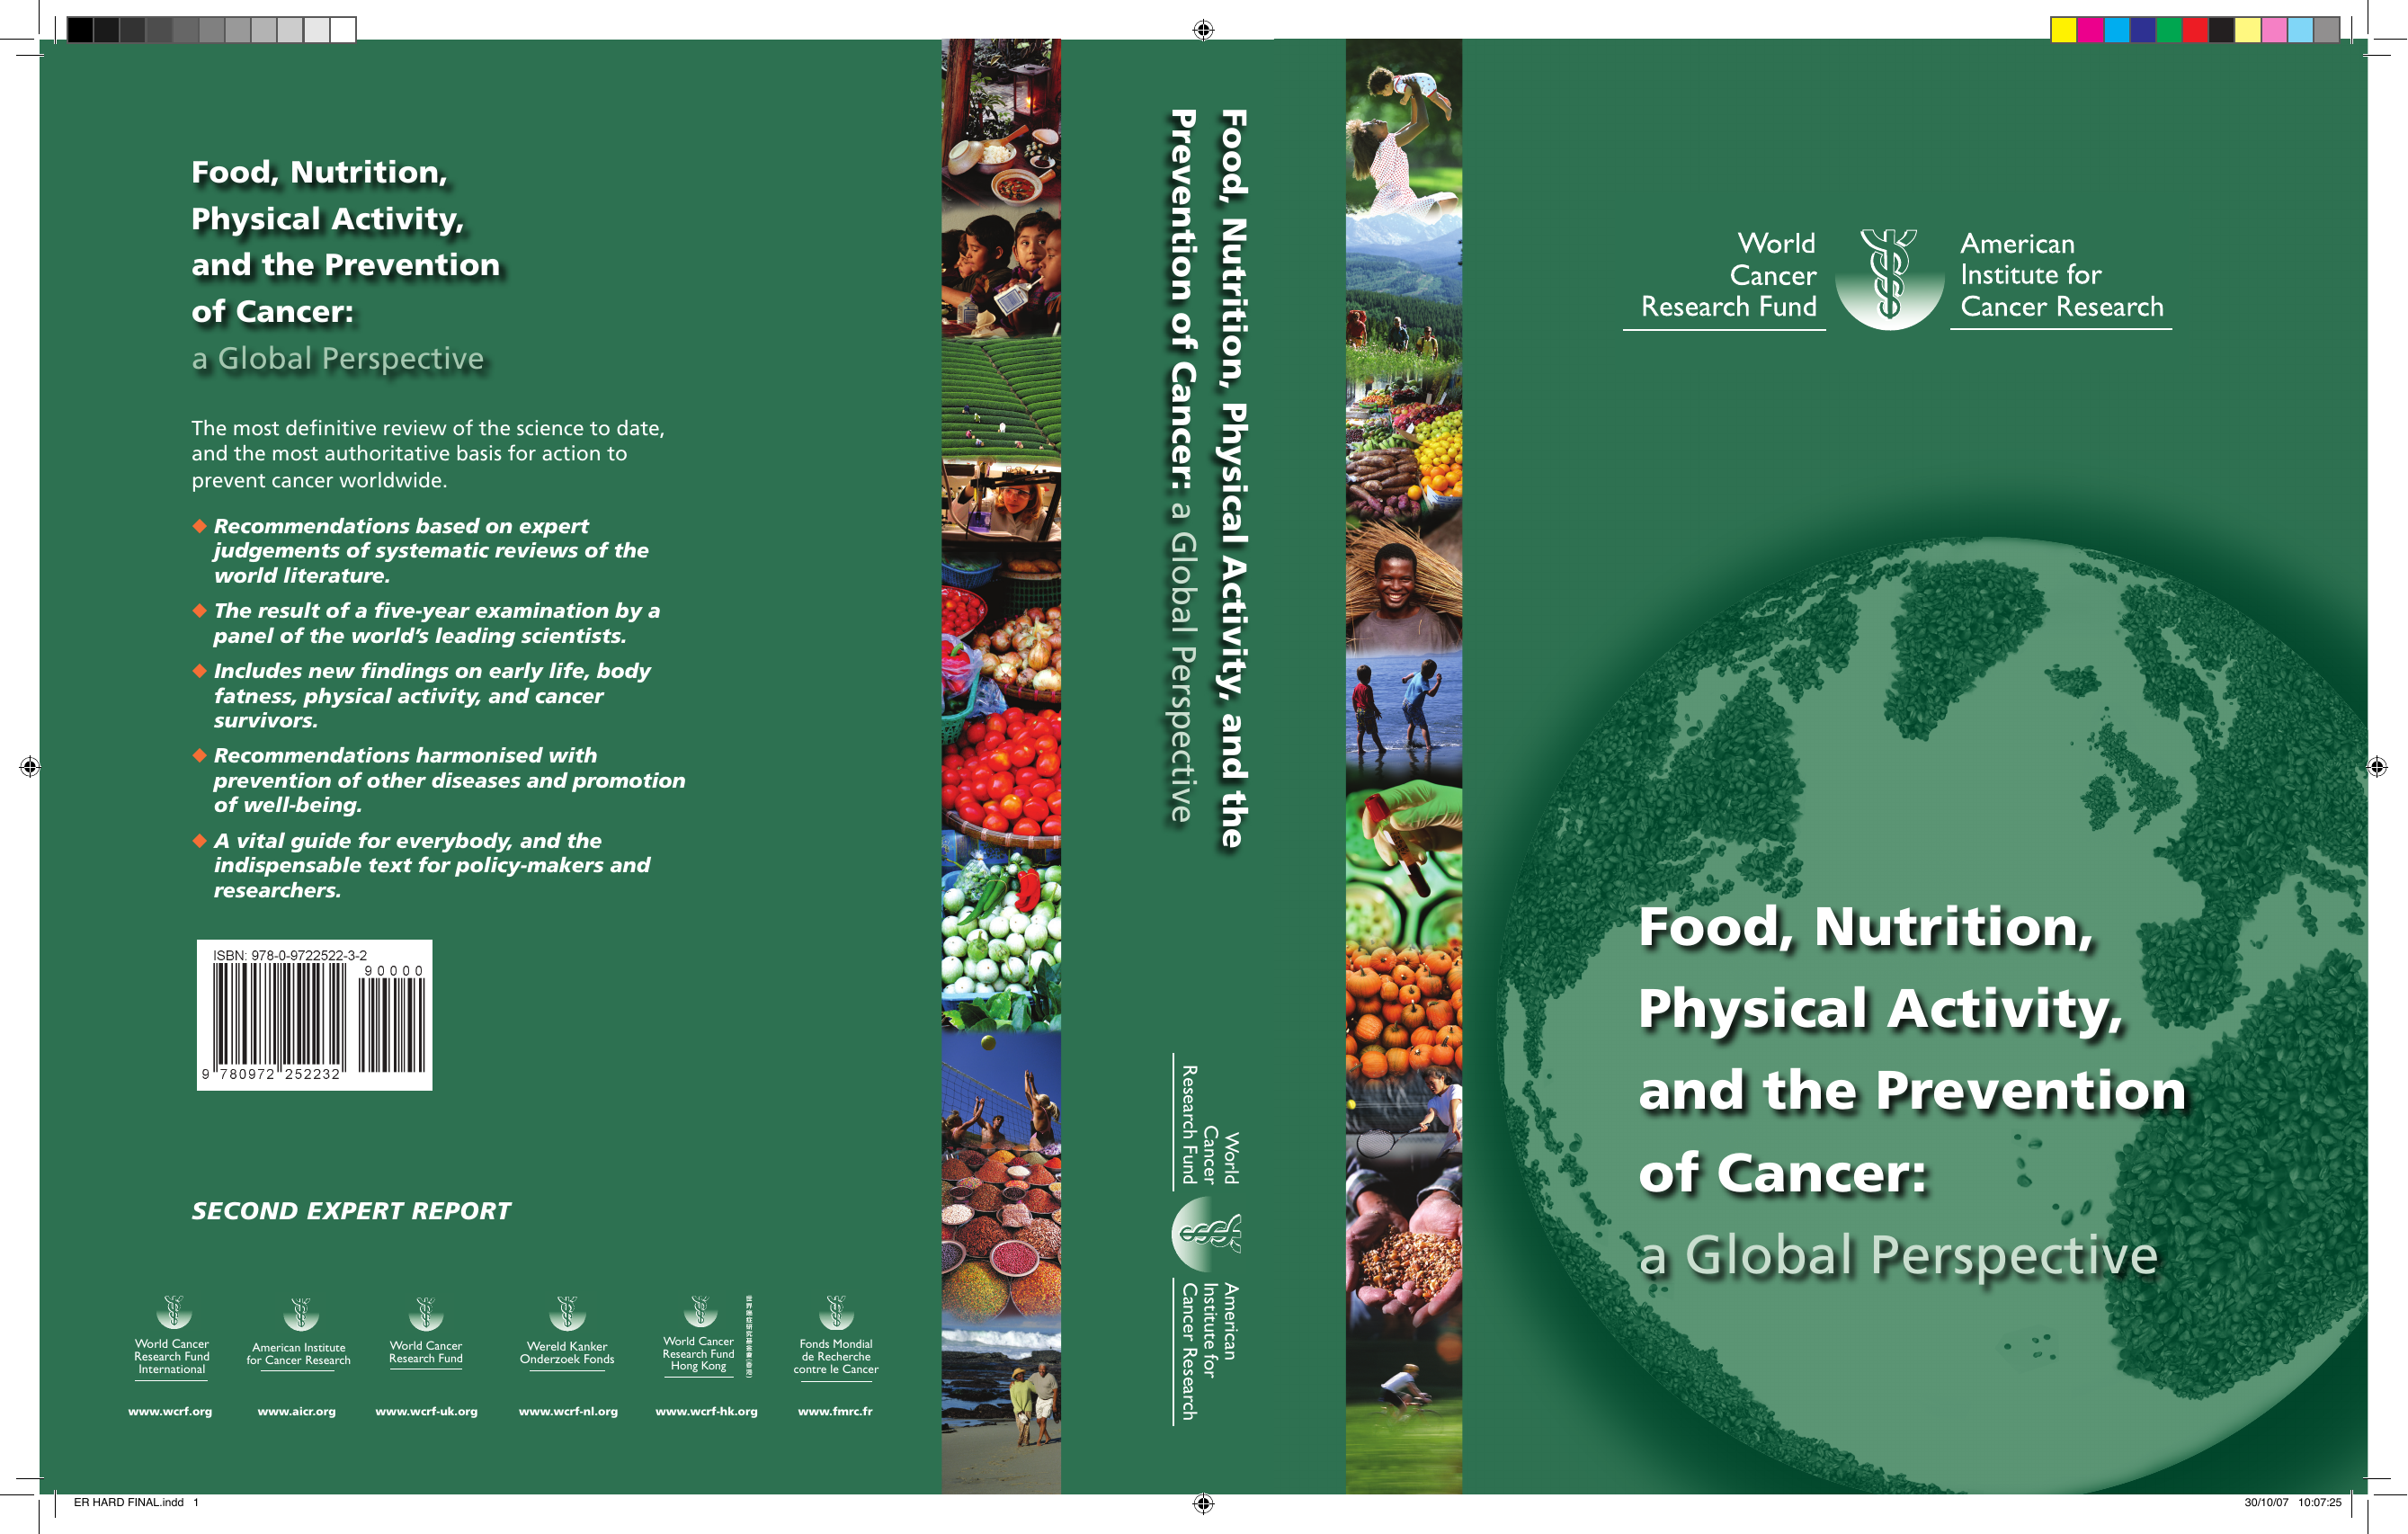 Food, Nutrition, Physical Activity Pr evention of Cancer